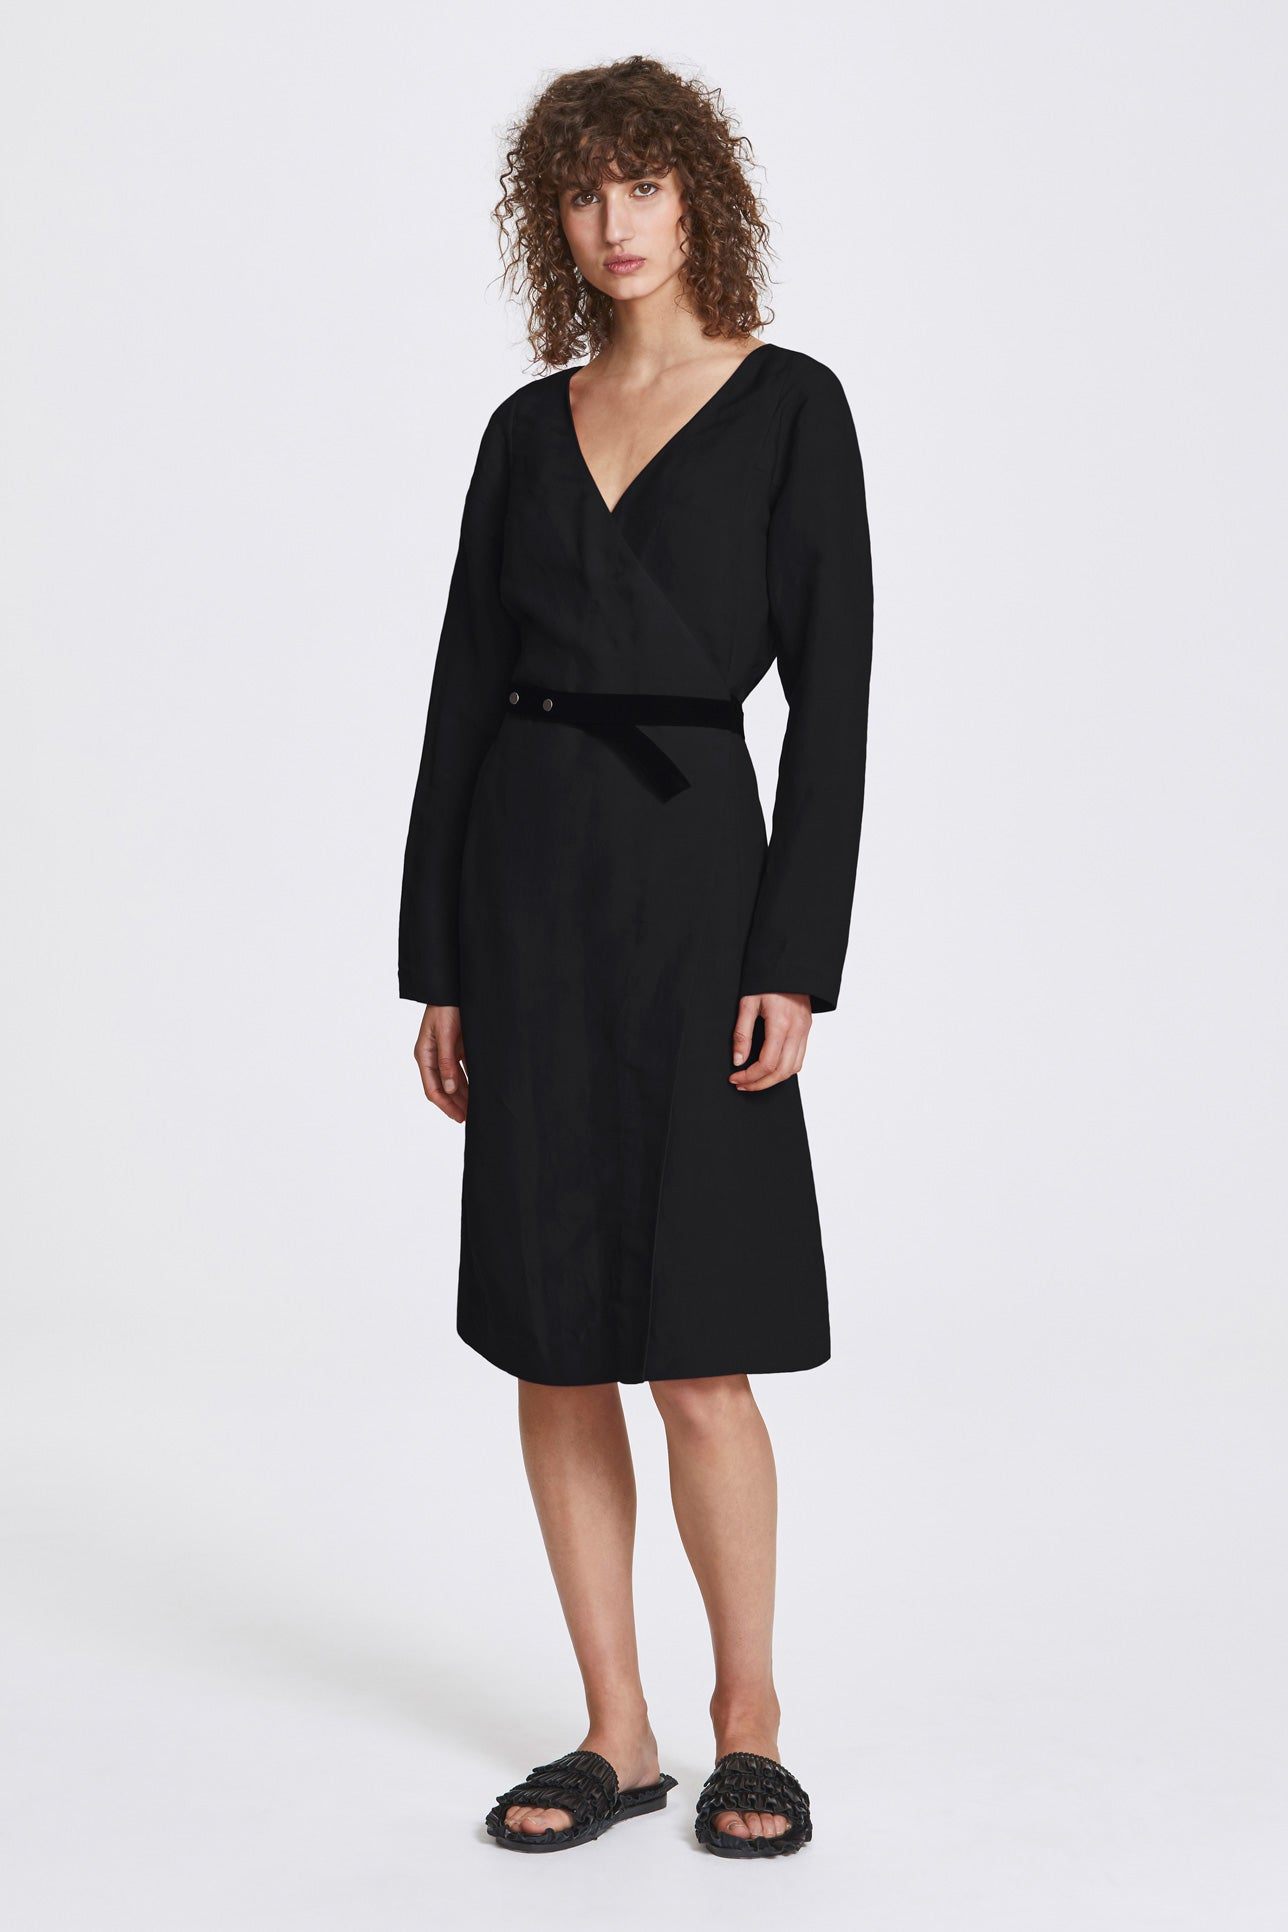 Bi-stud wrap dress - Linen blend - Black